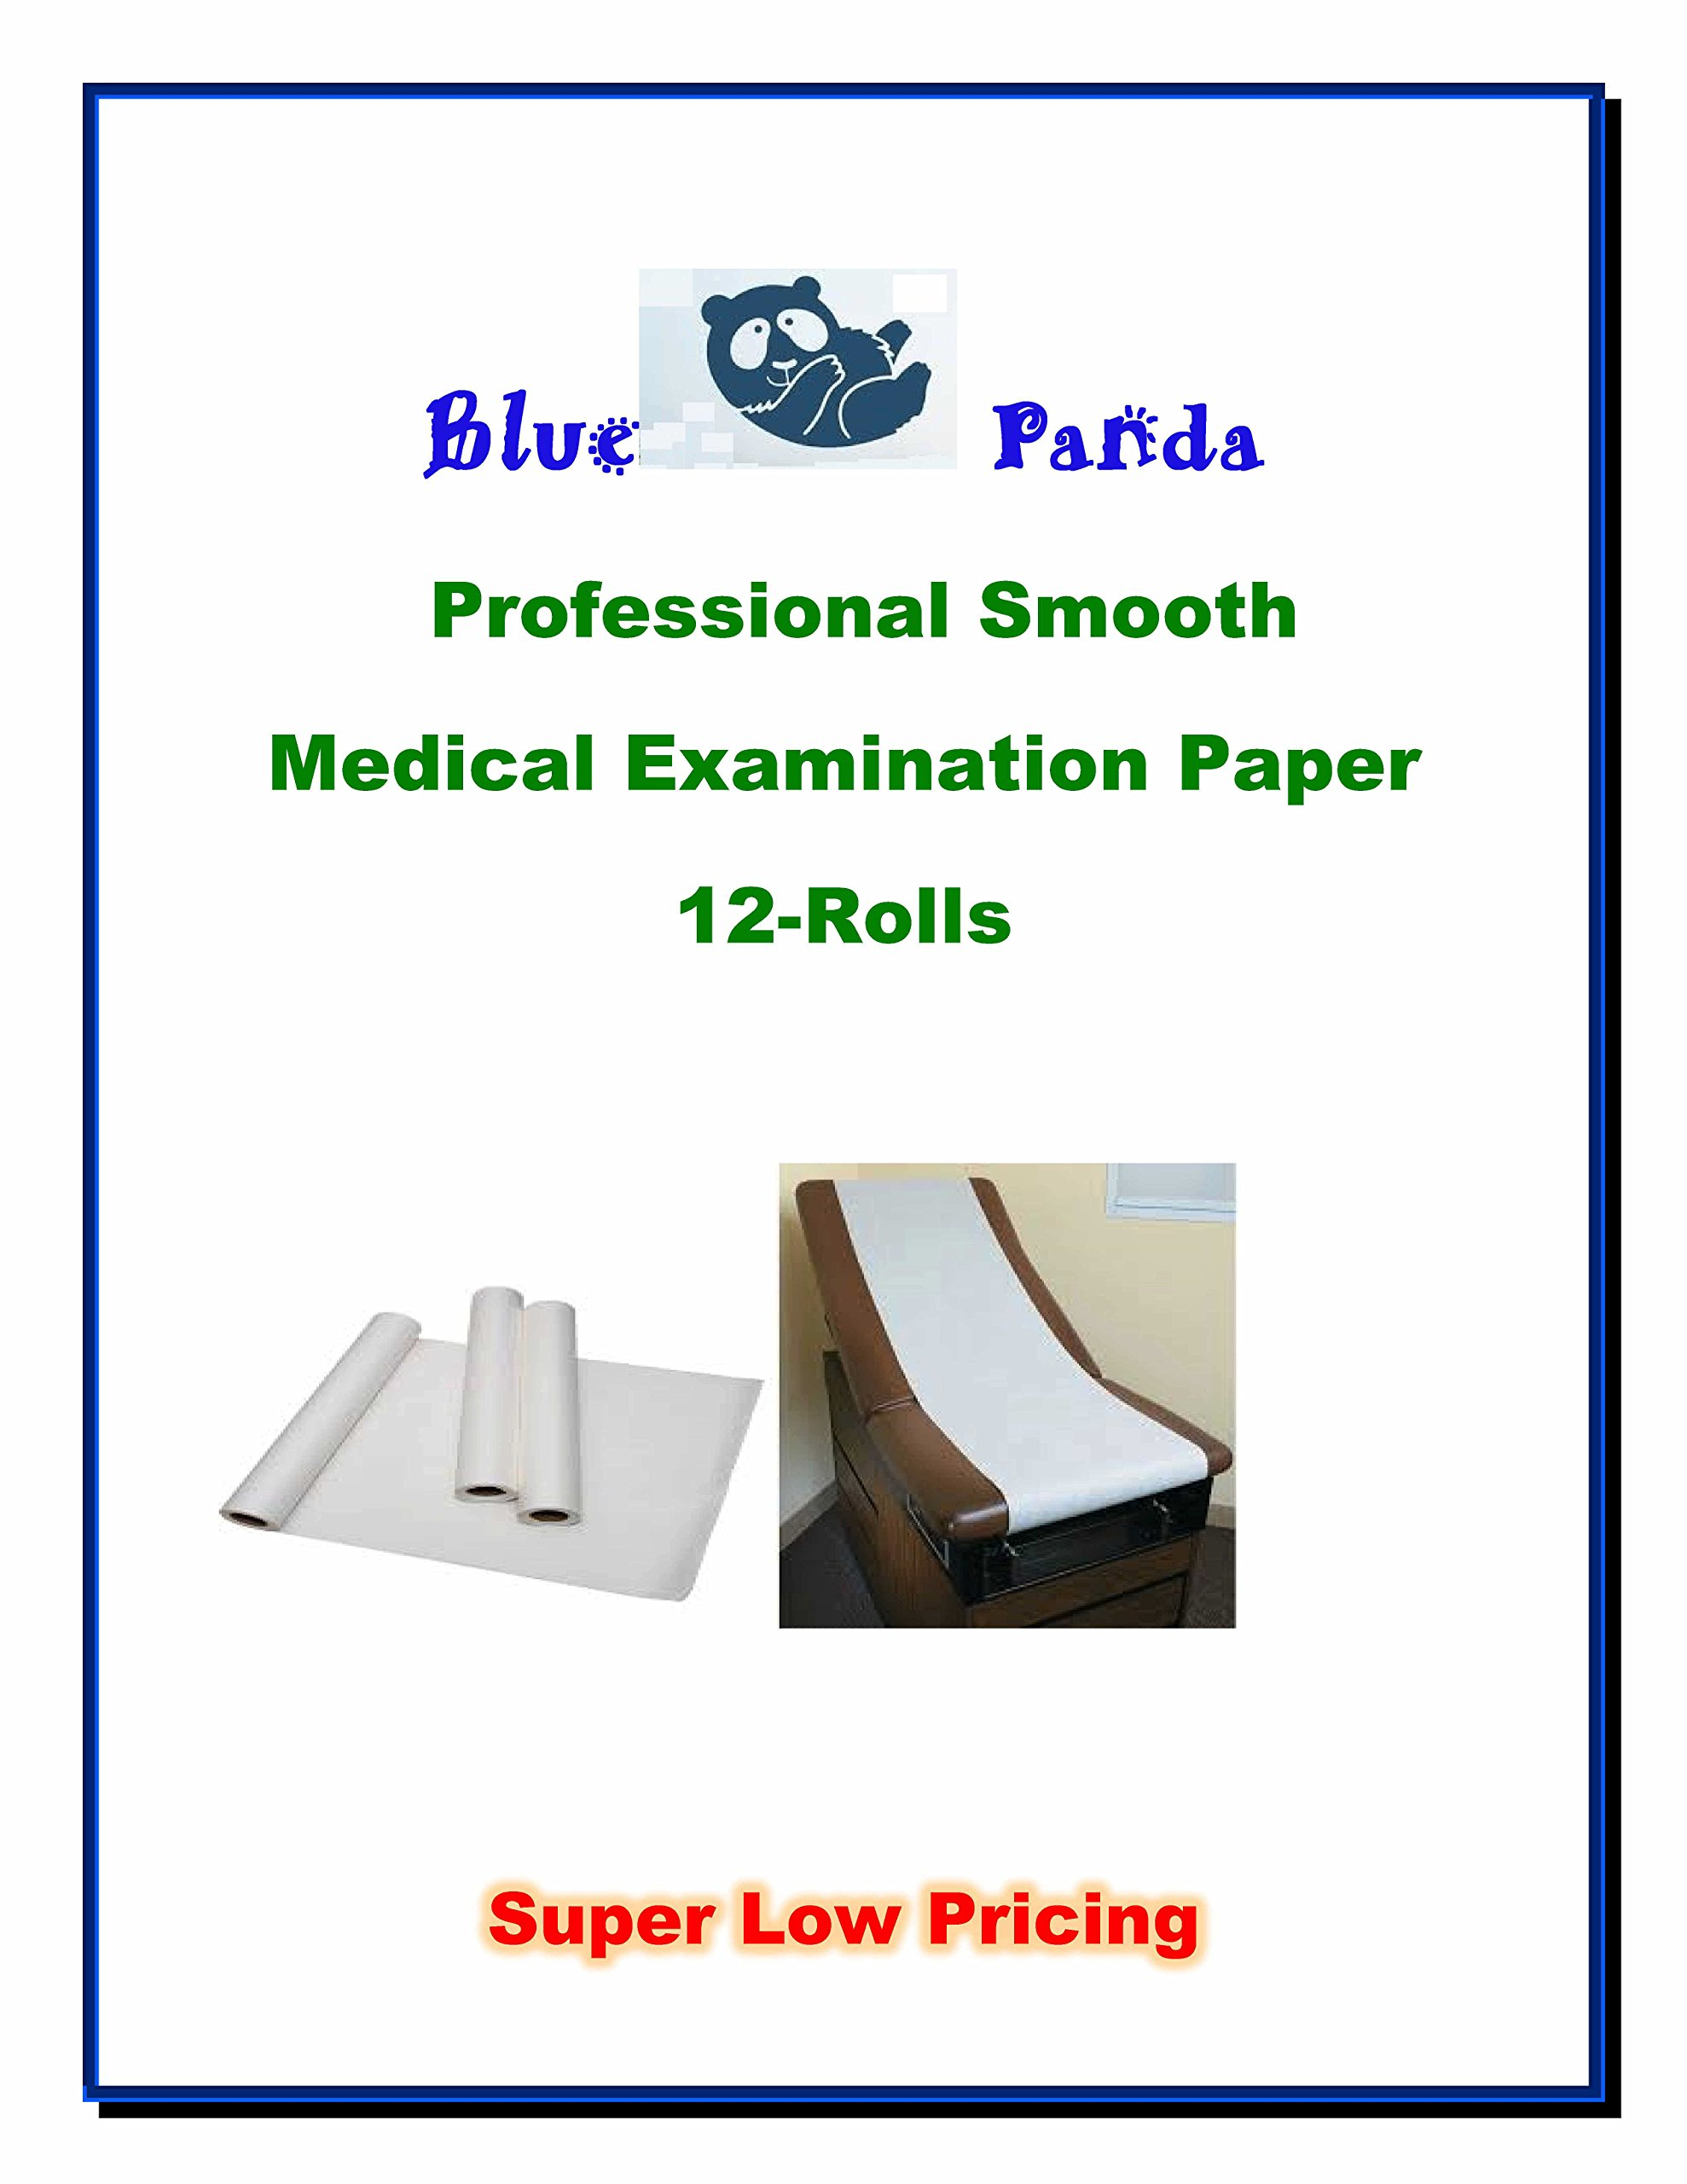 Blue Panda Examination Table Smooth Paper 14'' x 12 Rolls x 225ft